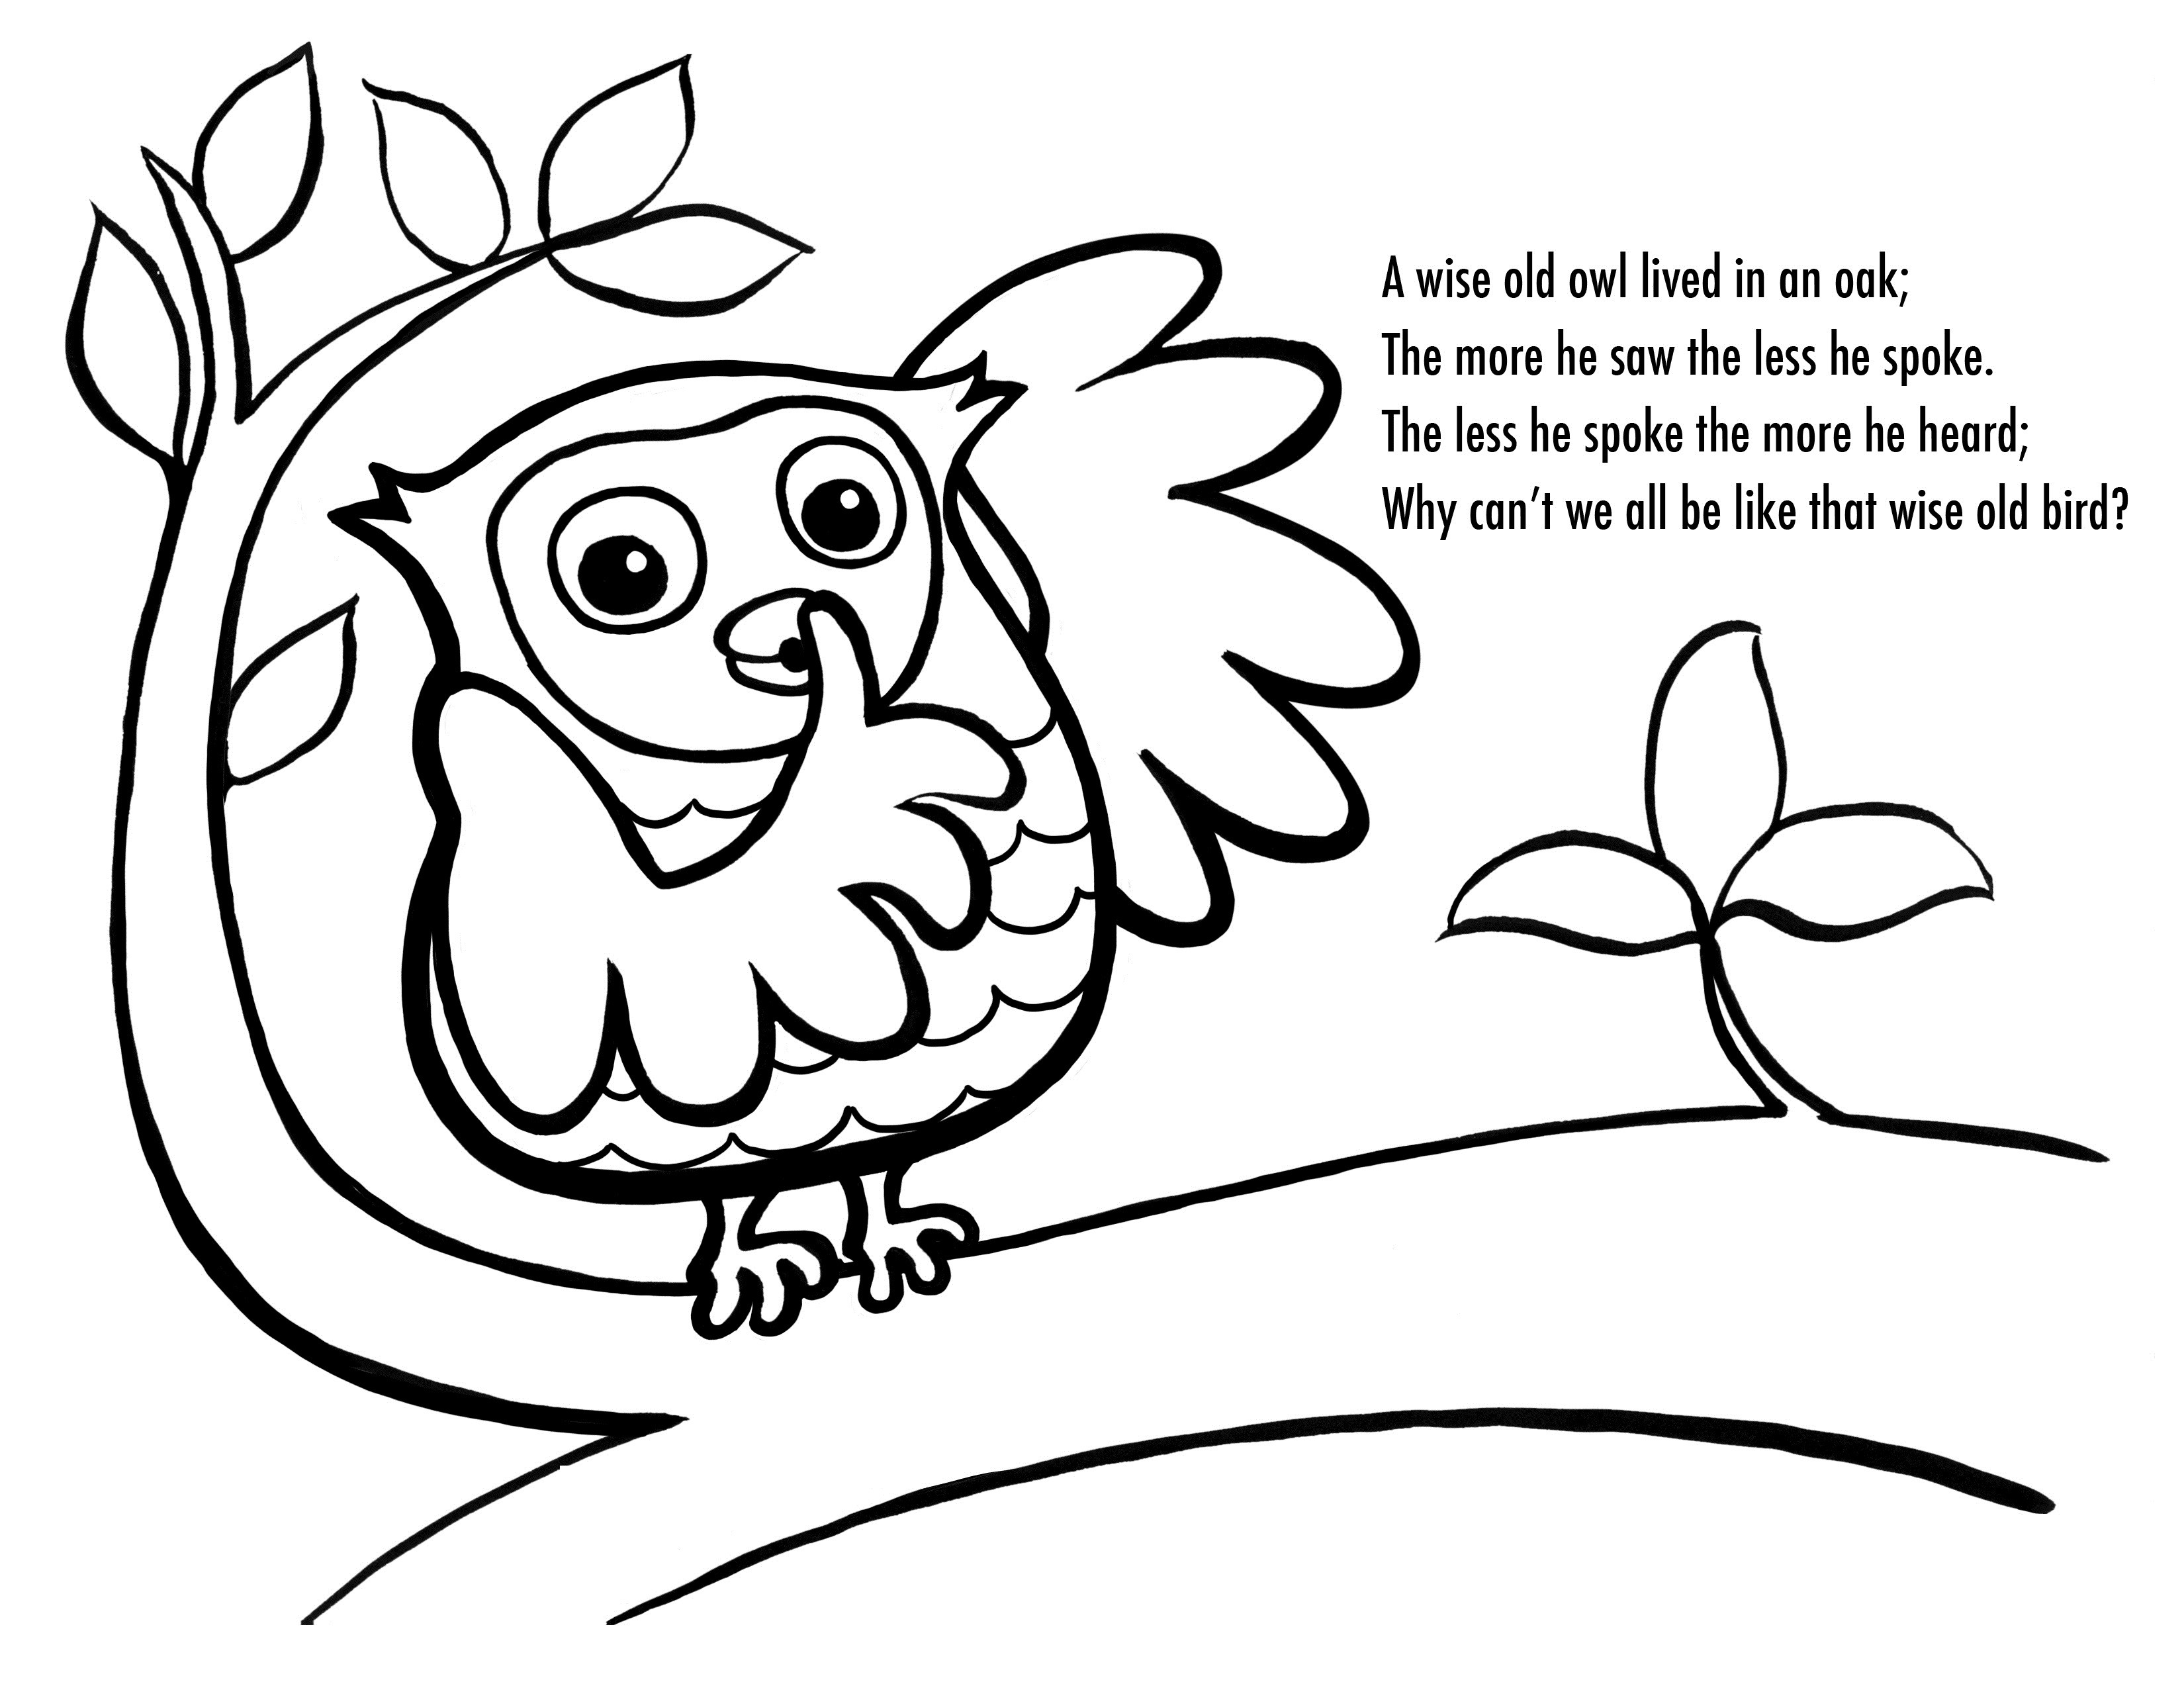 Coloring Pages For Kides  Free Printable Owl Coloring Pages For Kids